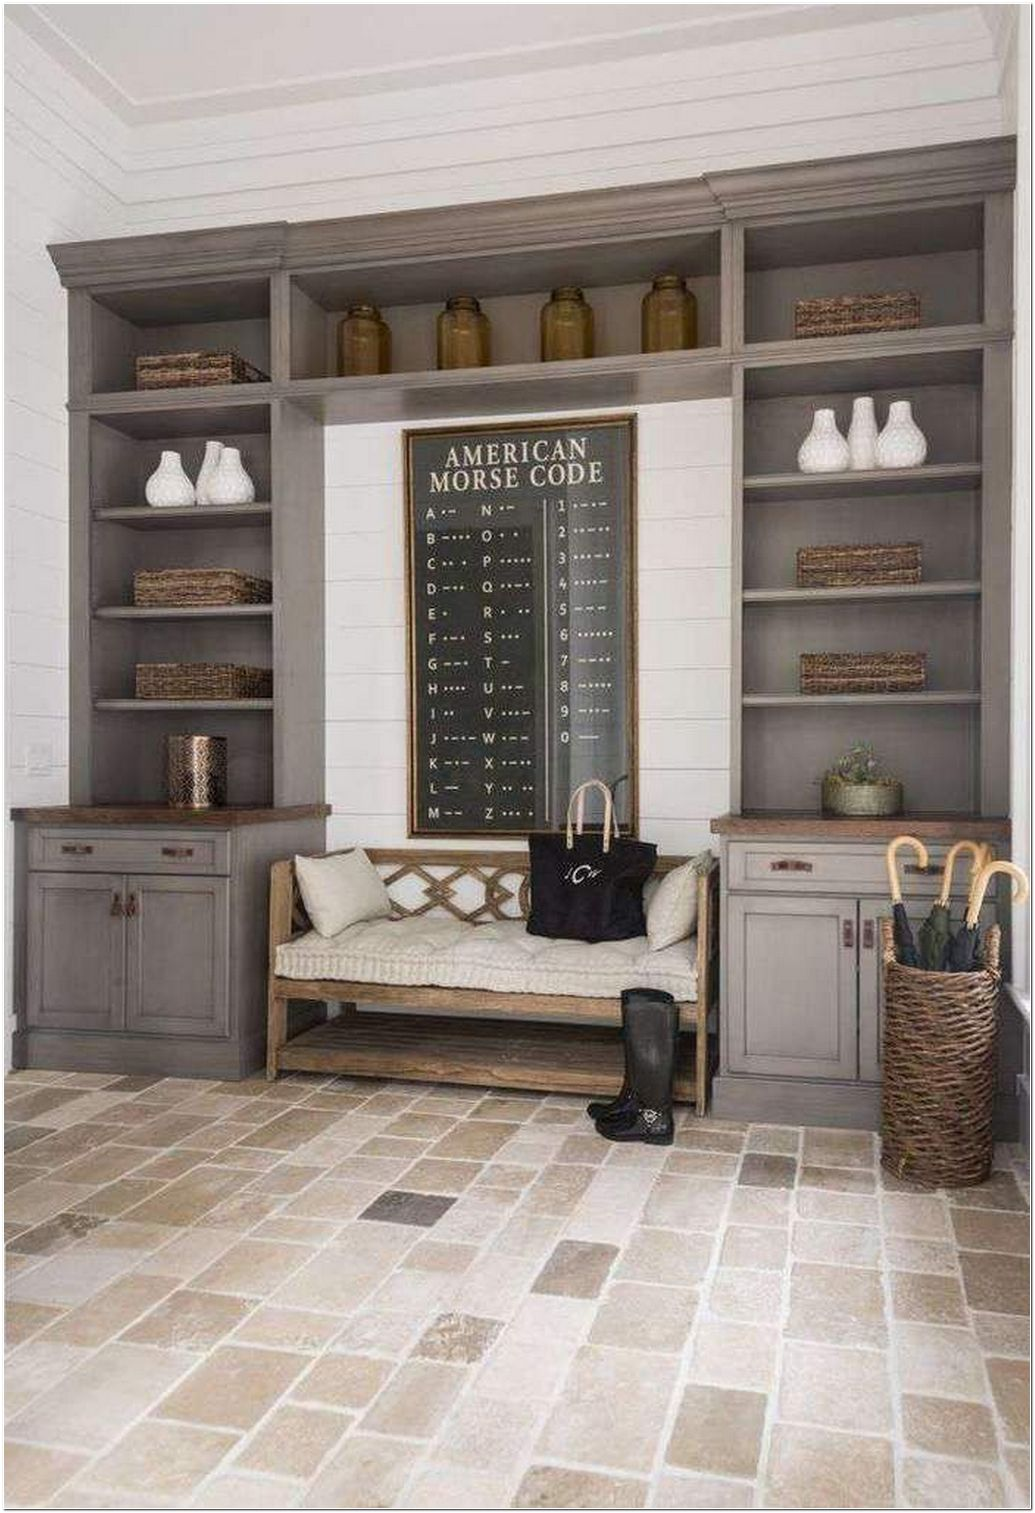 71+ Ways to Make a Perfect Mudroom You Should Know